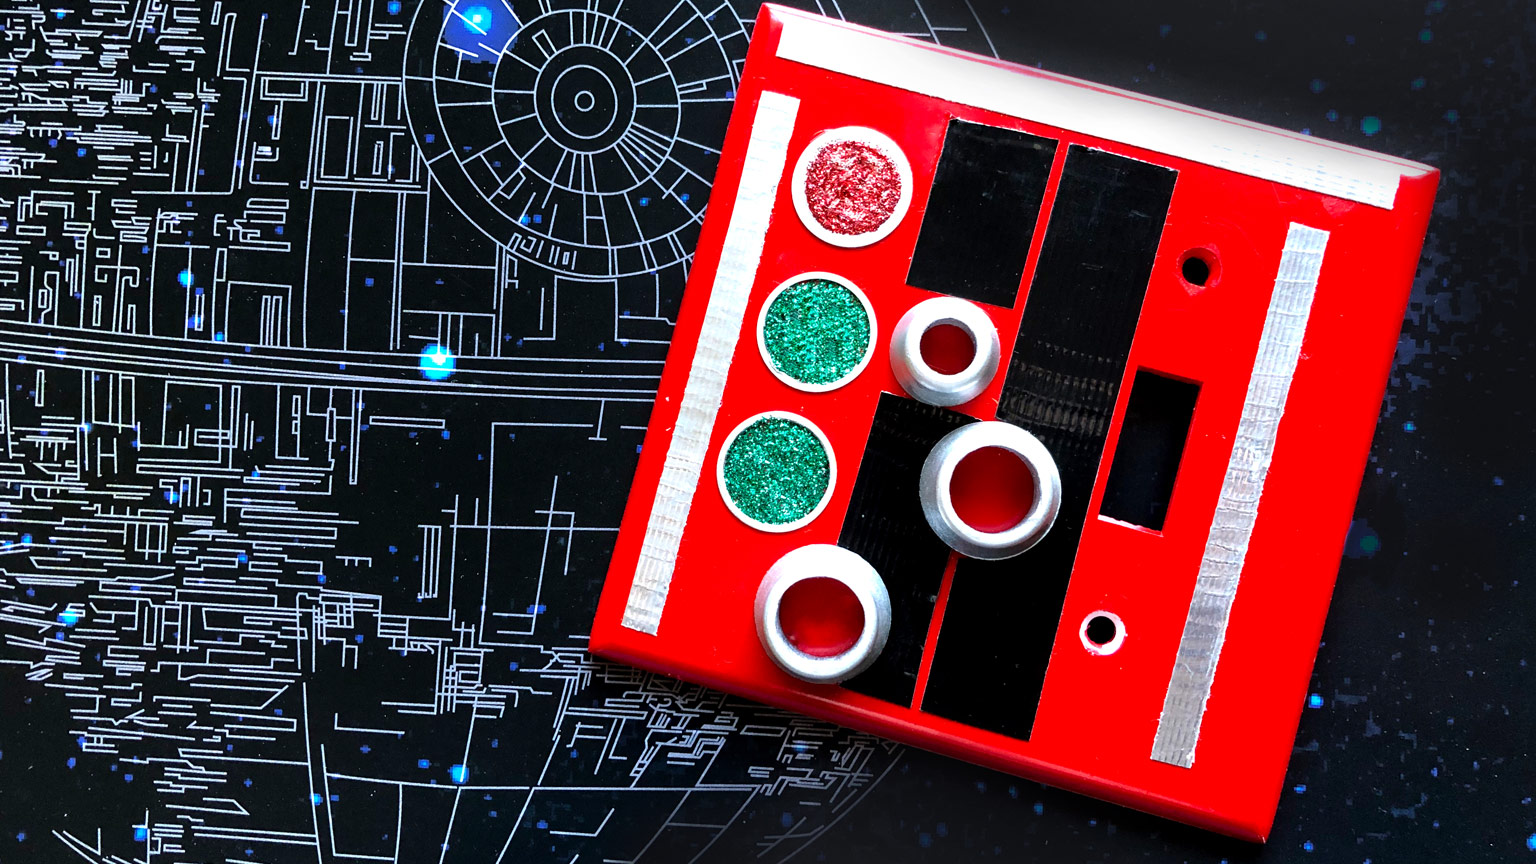 Death Star control panel light switch plate complete.